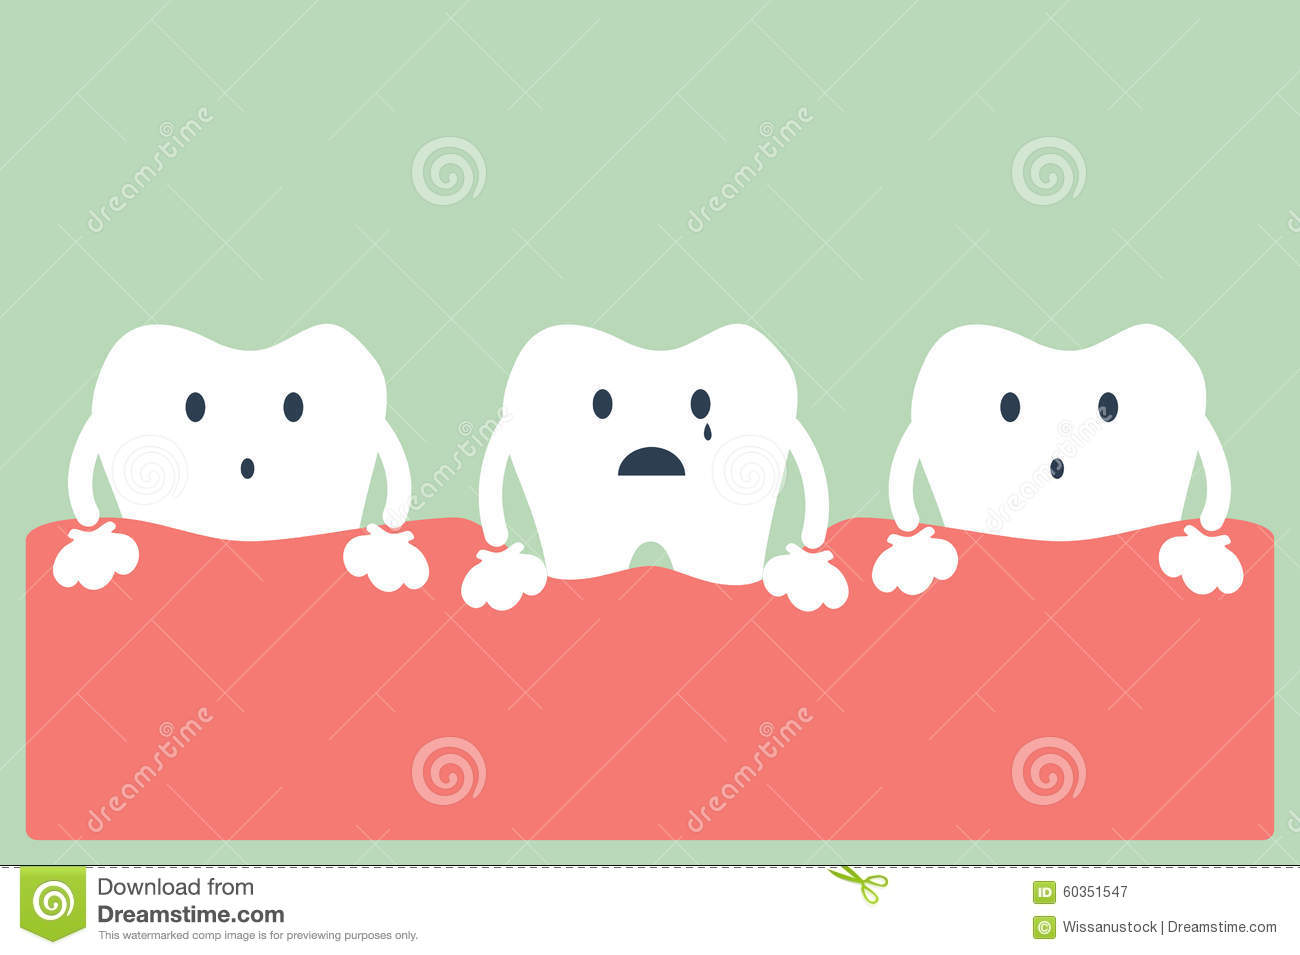 tooth periodontal disease stock vector image 60351547 surgery clip art pictures surgery clipart for doctor board